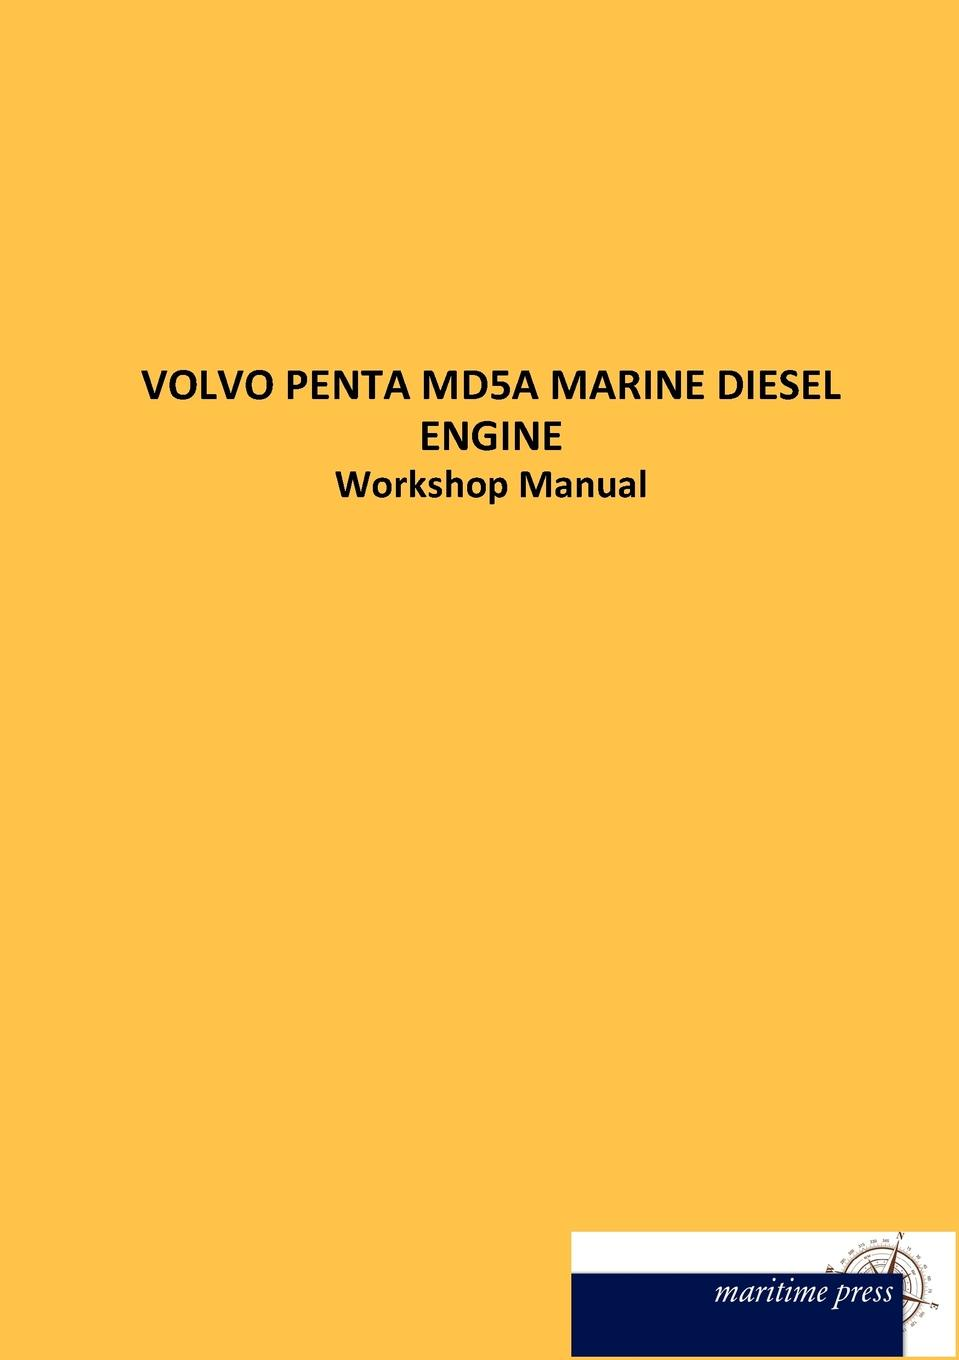 N.N. VOLVO PENTA MD5A MARINE DIESEL ENGINE dlla133p814 common rail injector nozzle suitable for diesel engine a